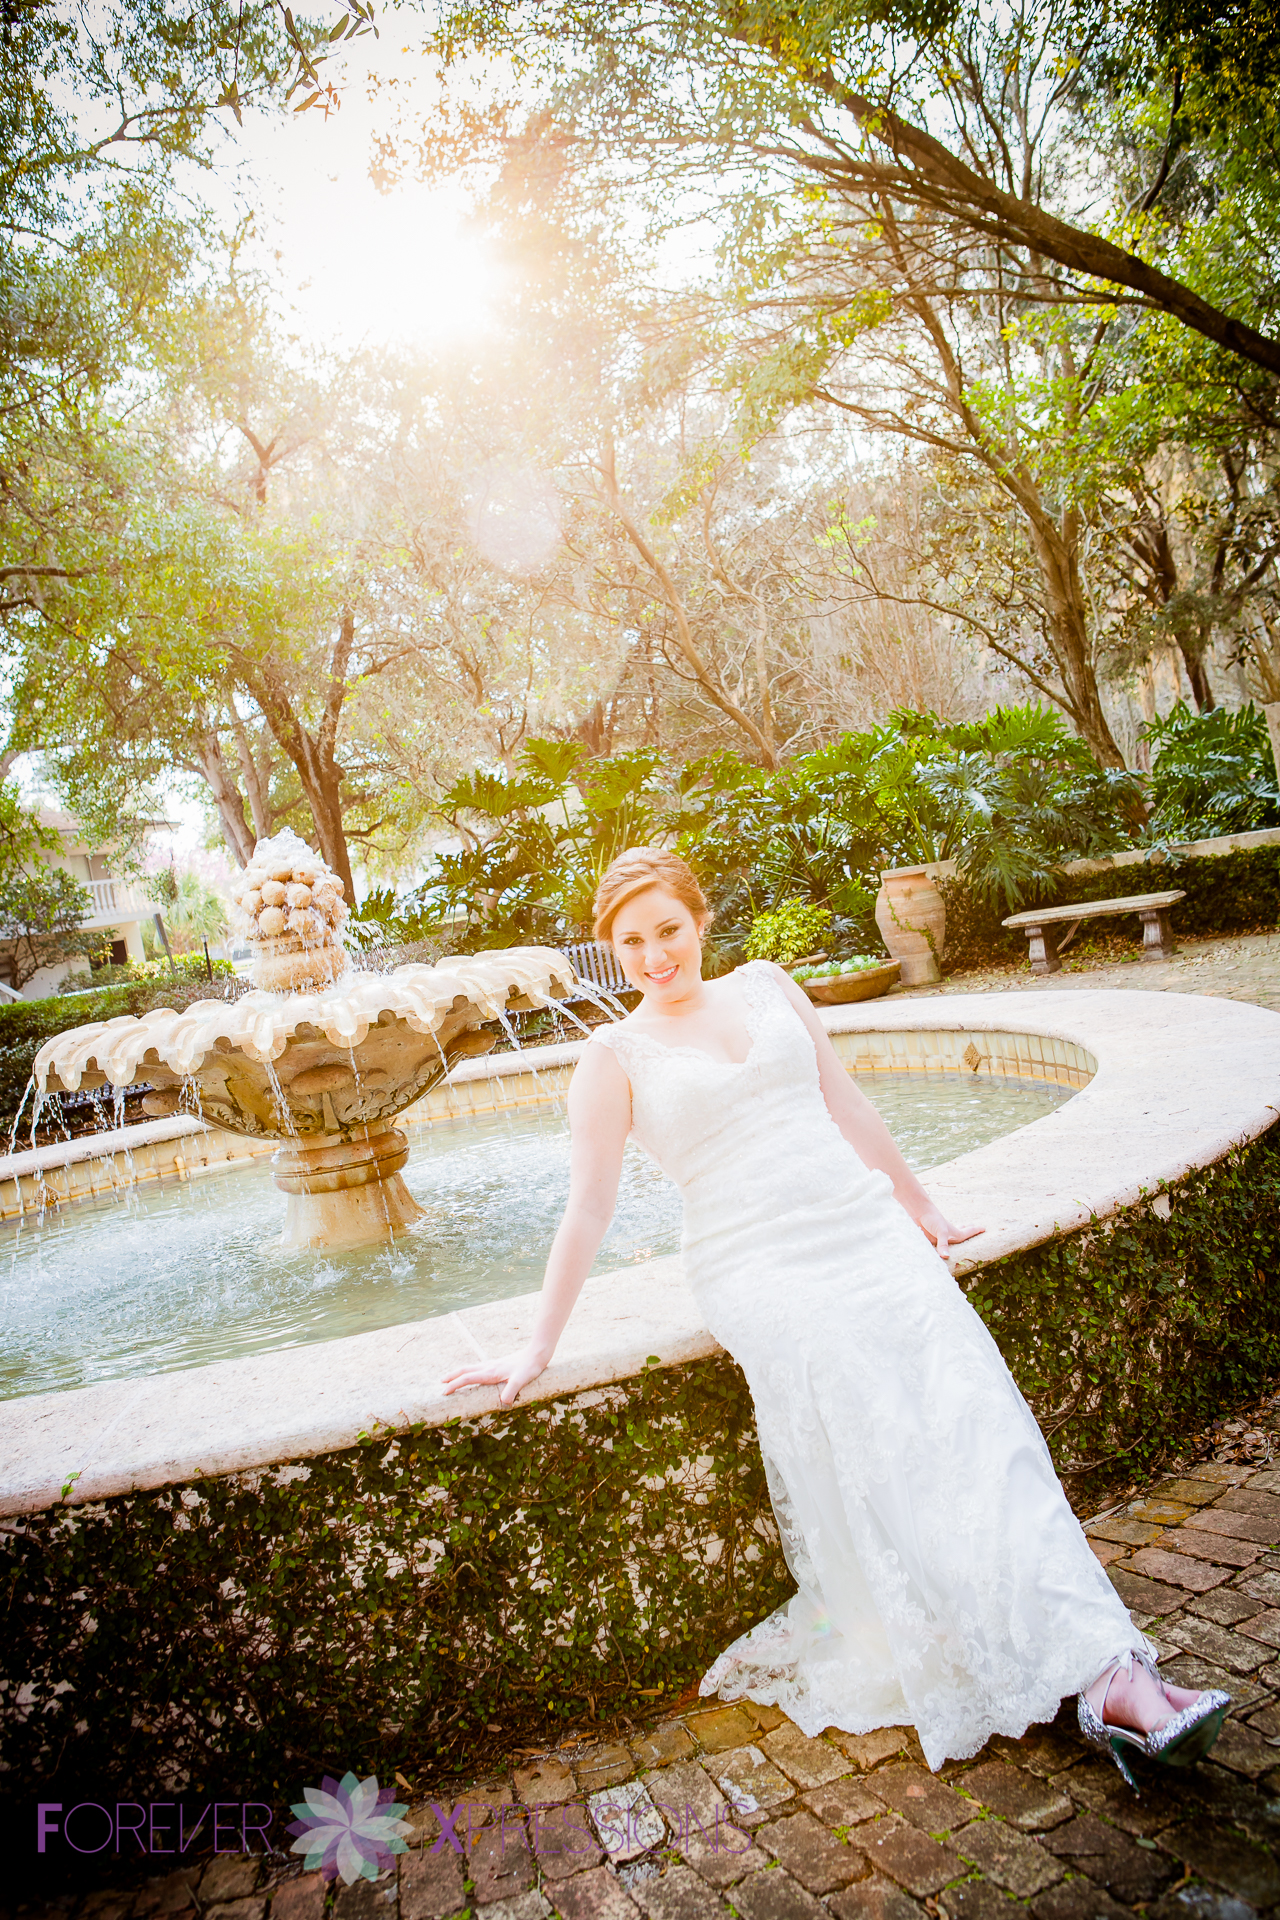 Forever_Xpressions_Wedding_Photography_Winterpark_Casa_Feliz-0252